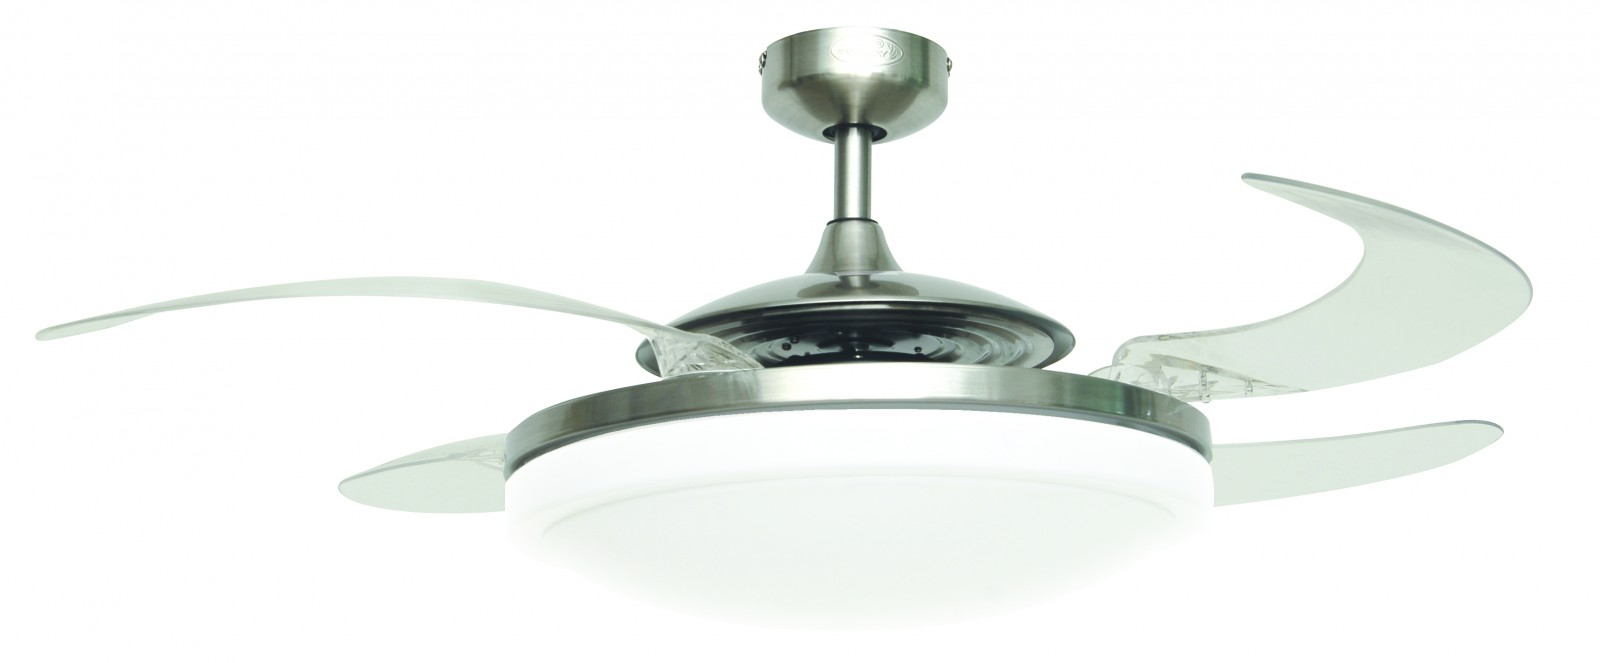 Ceiling fan fanaway evo2 endure chrome brushed 122 cm 48 with retractable blades ceiling fans - Fanaway ceiling fan ...